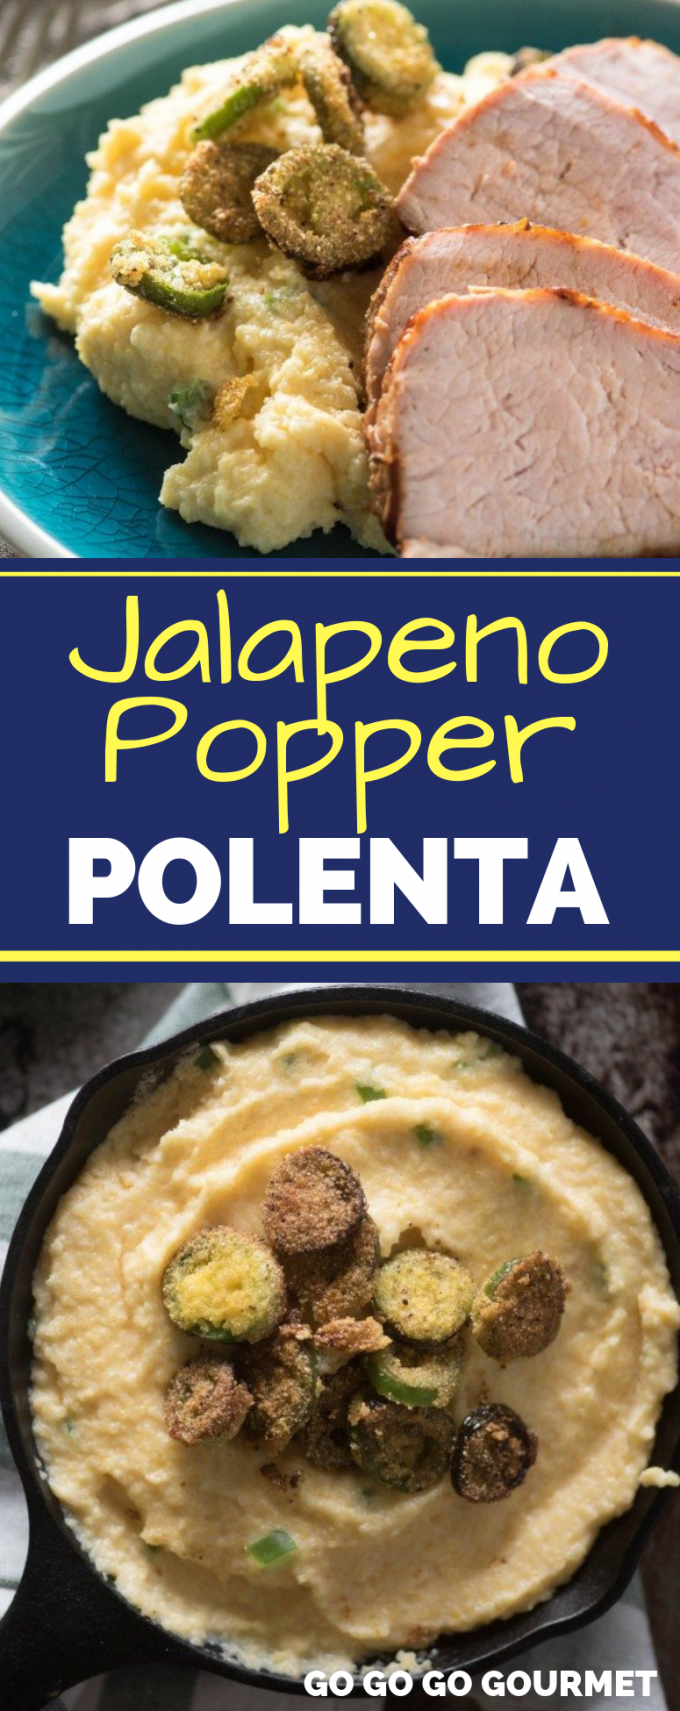 Jalapeño Popper Polenta is packed with flavor and only takes a few minutes to prepare- spicy with jalapeños and cheesy with cheddar, it's an ideal side dish for your summer dinners! #gogogogourmet #jalapenopopperpolenta #polenta #polentarecipe #cheesypolenta via @gogogogourmet